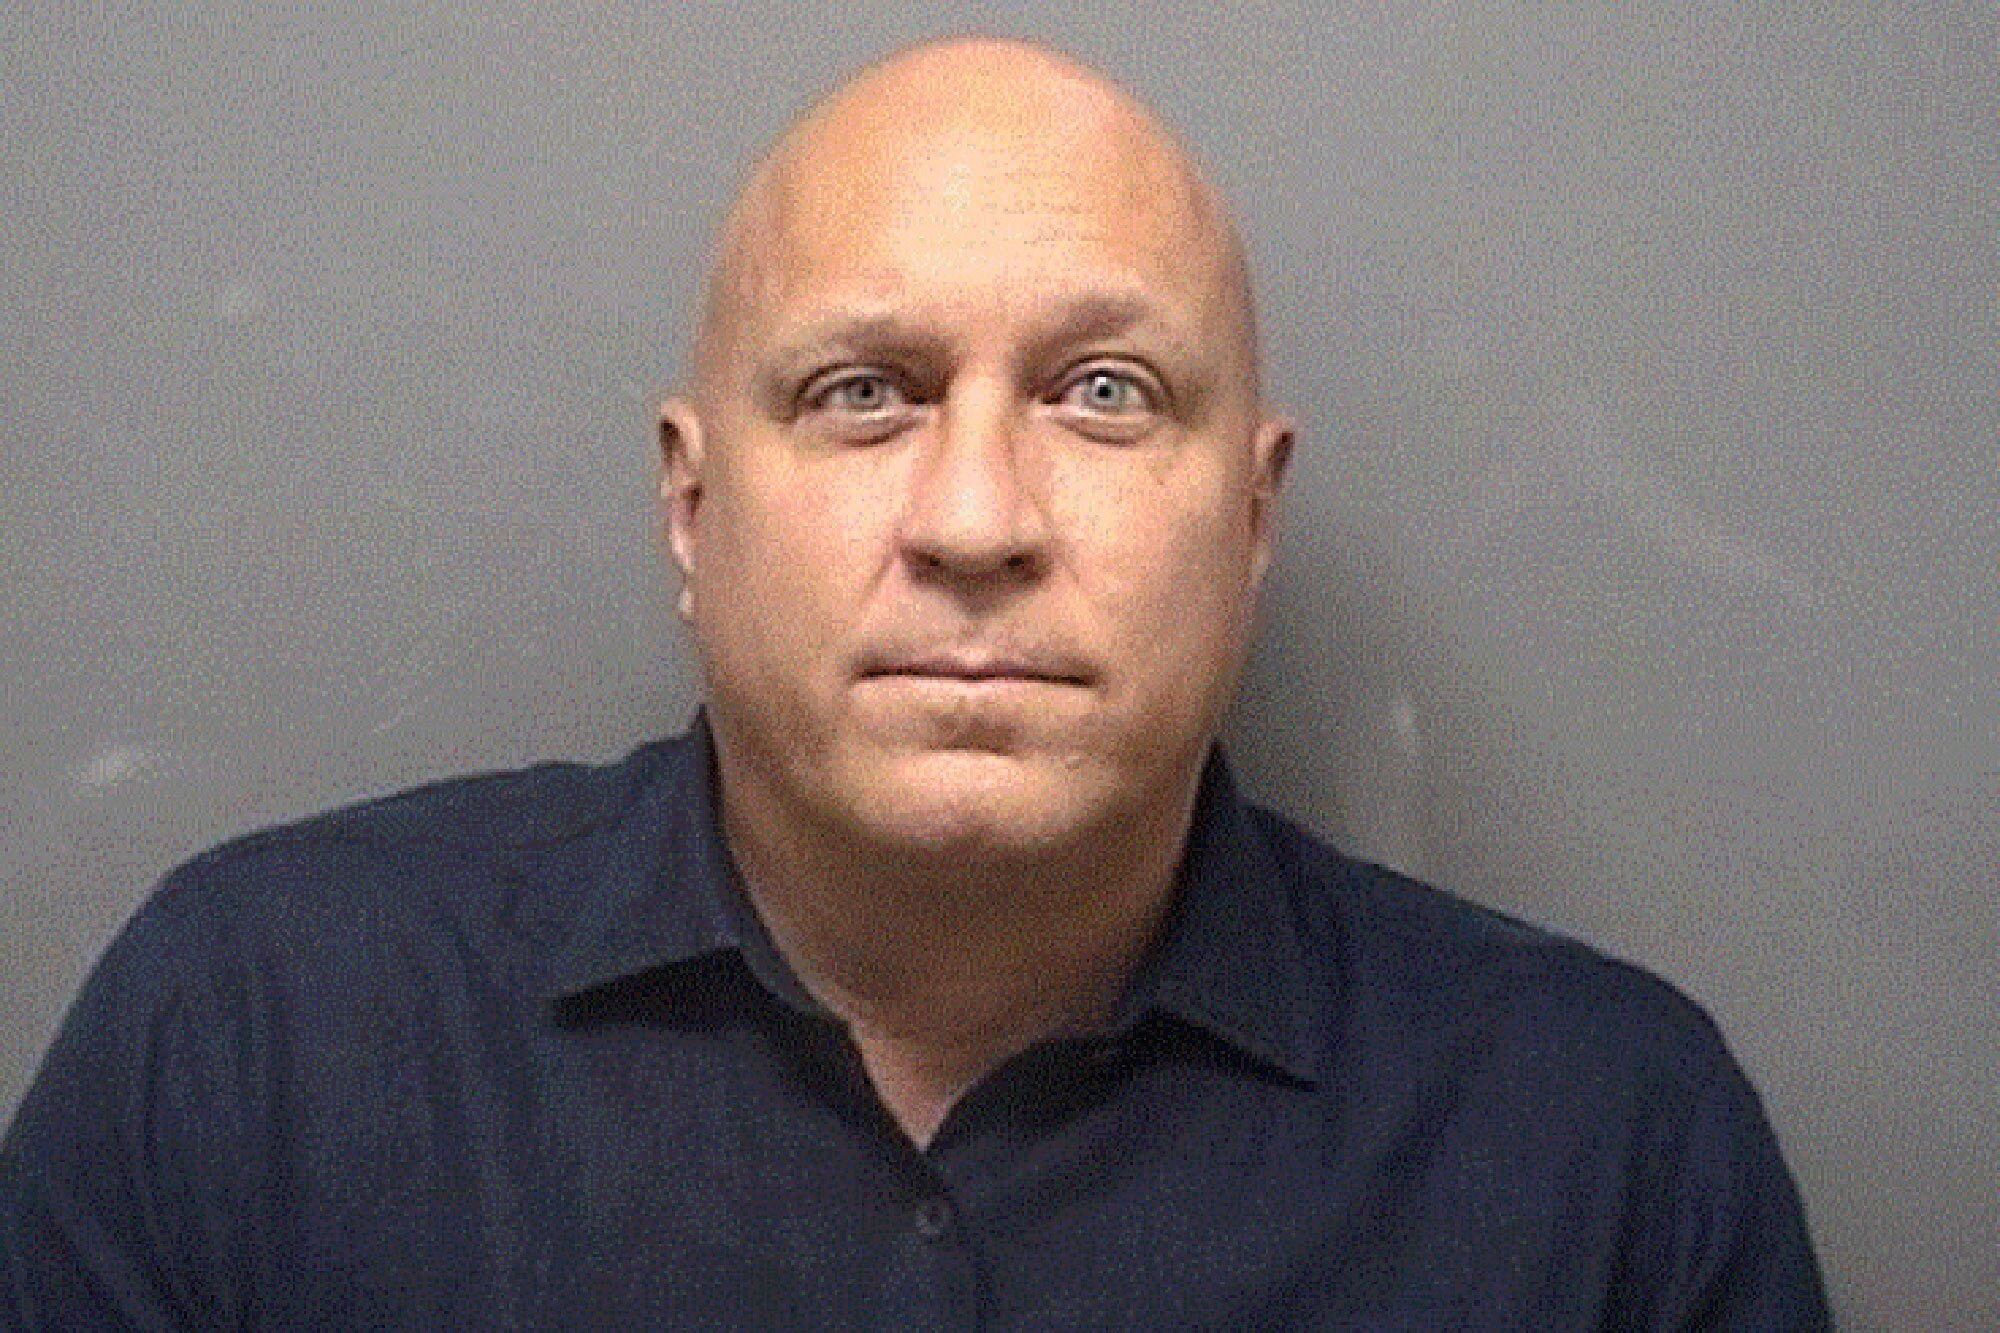 Steve Wilkos Charged With Dui After Terrifying Crash People Com His birthday, what he did before fame, his family life, fun trivia facts his stevewilldoit instagram account has surpassed 2.5 million followers. steve wilkos charged with dui after